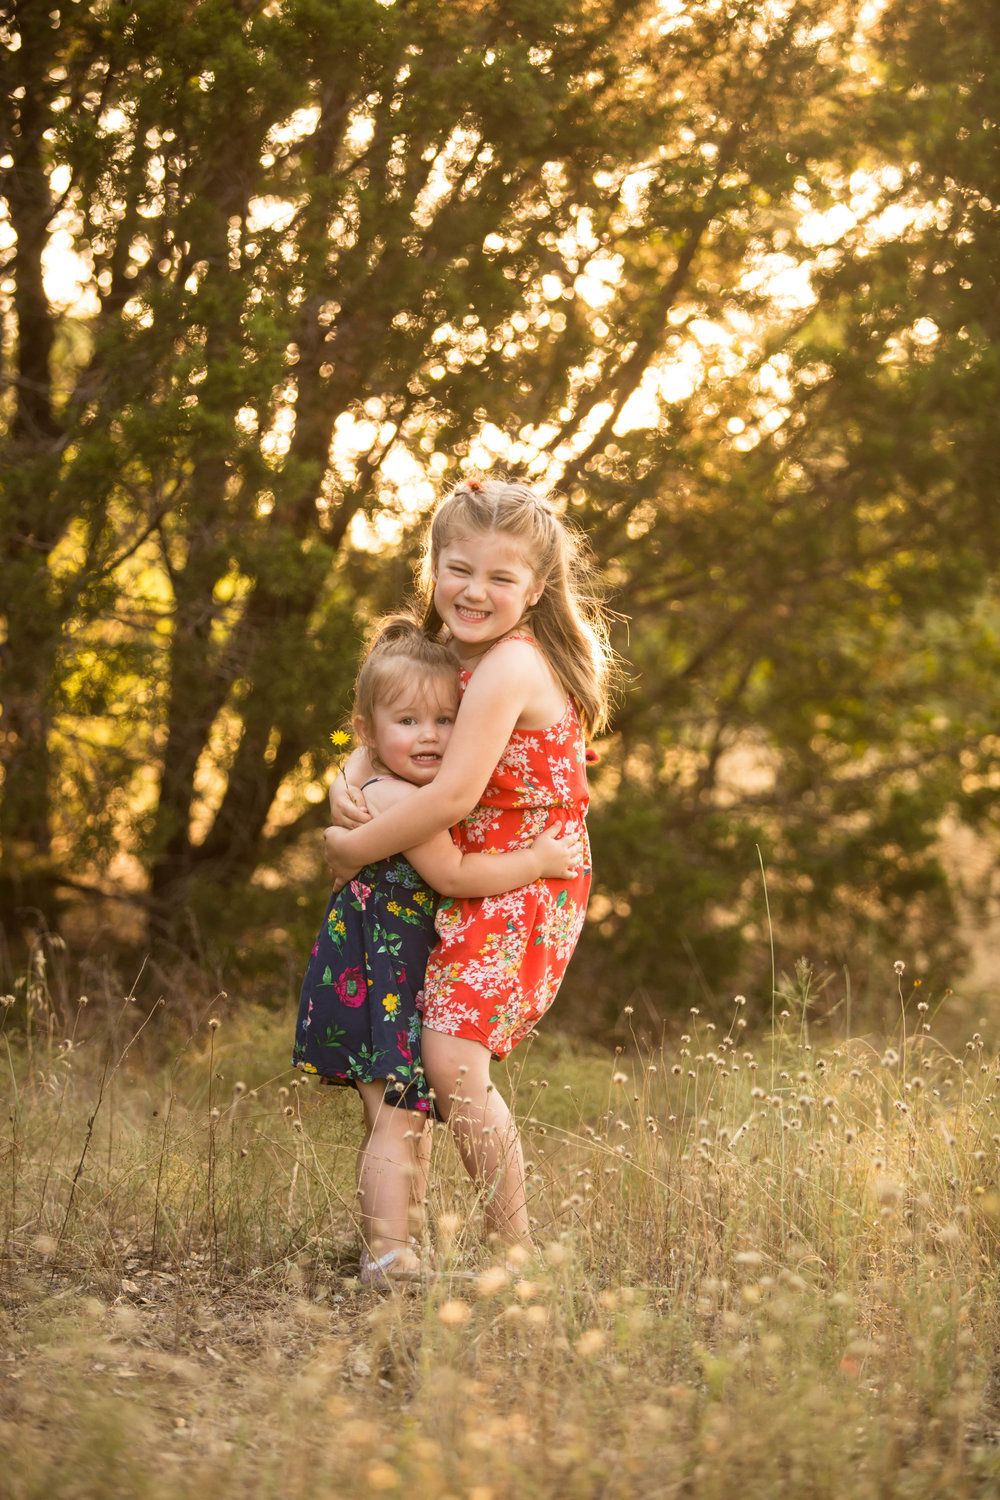 Marble_Falls_Family_Photographer_Jenna_Petty_10.jpg